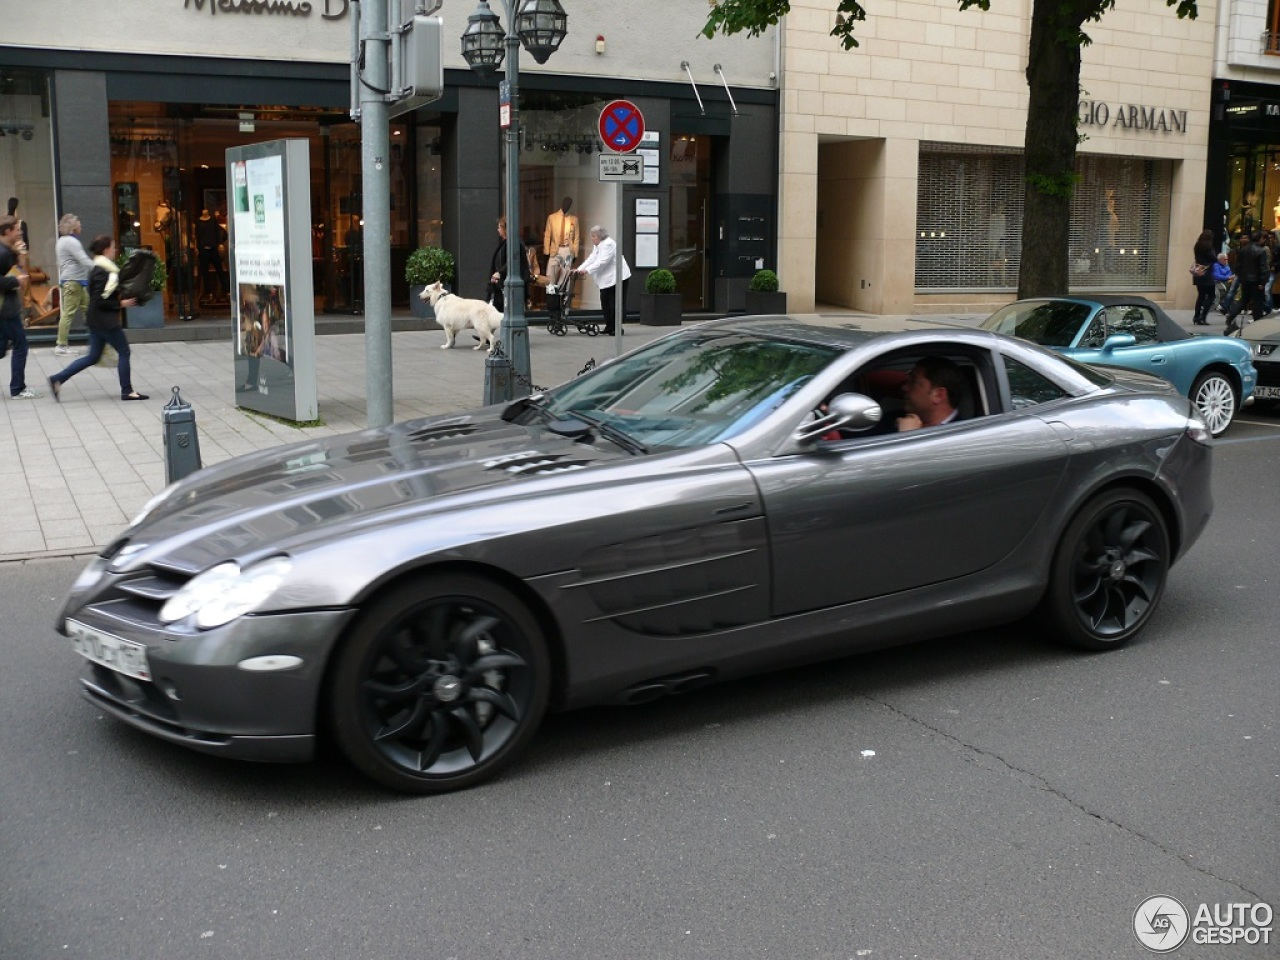 Mercedes benz slr mclaren 12 may 2013 autogespot for Mercedes benz slr mclaren price